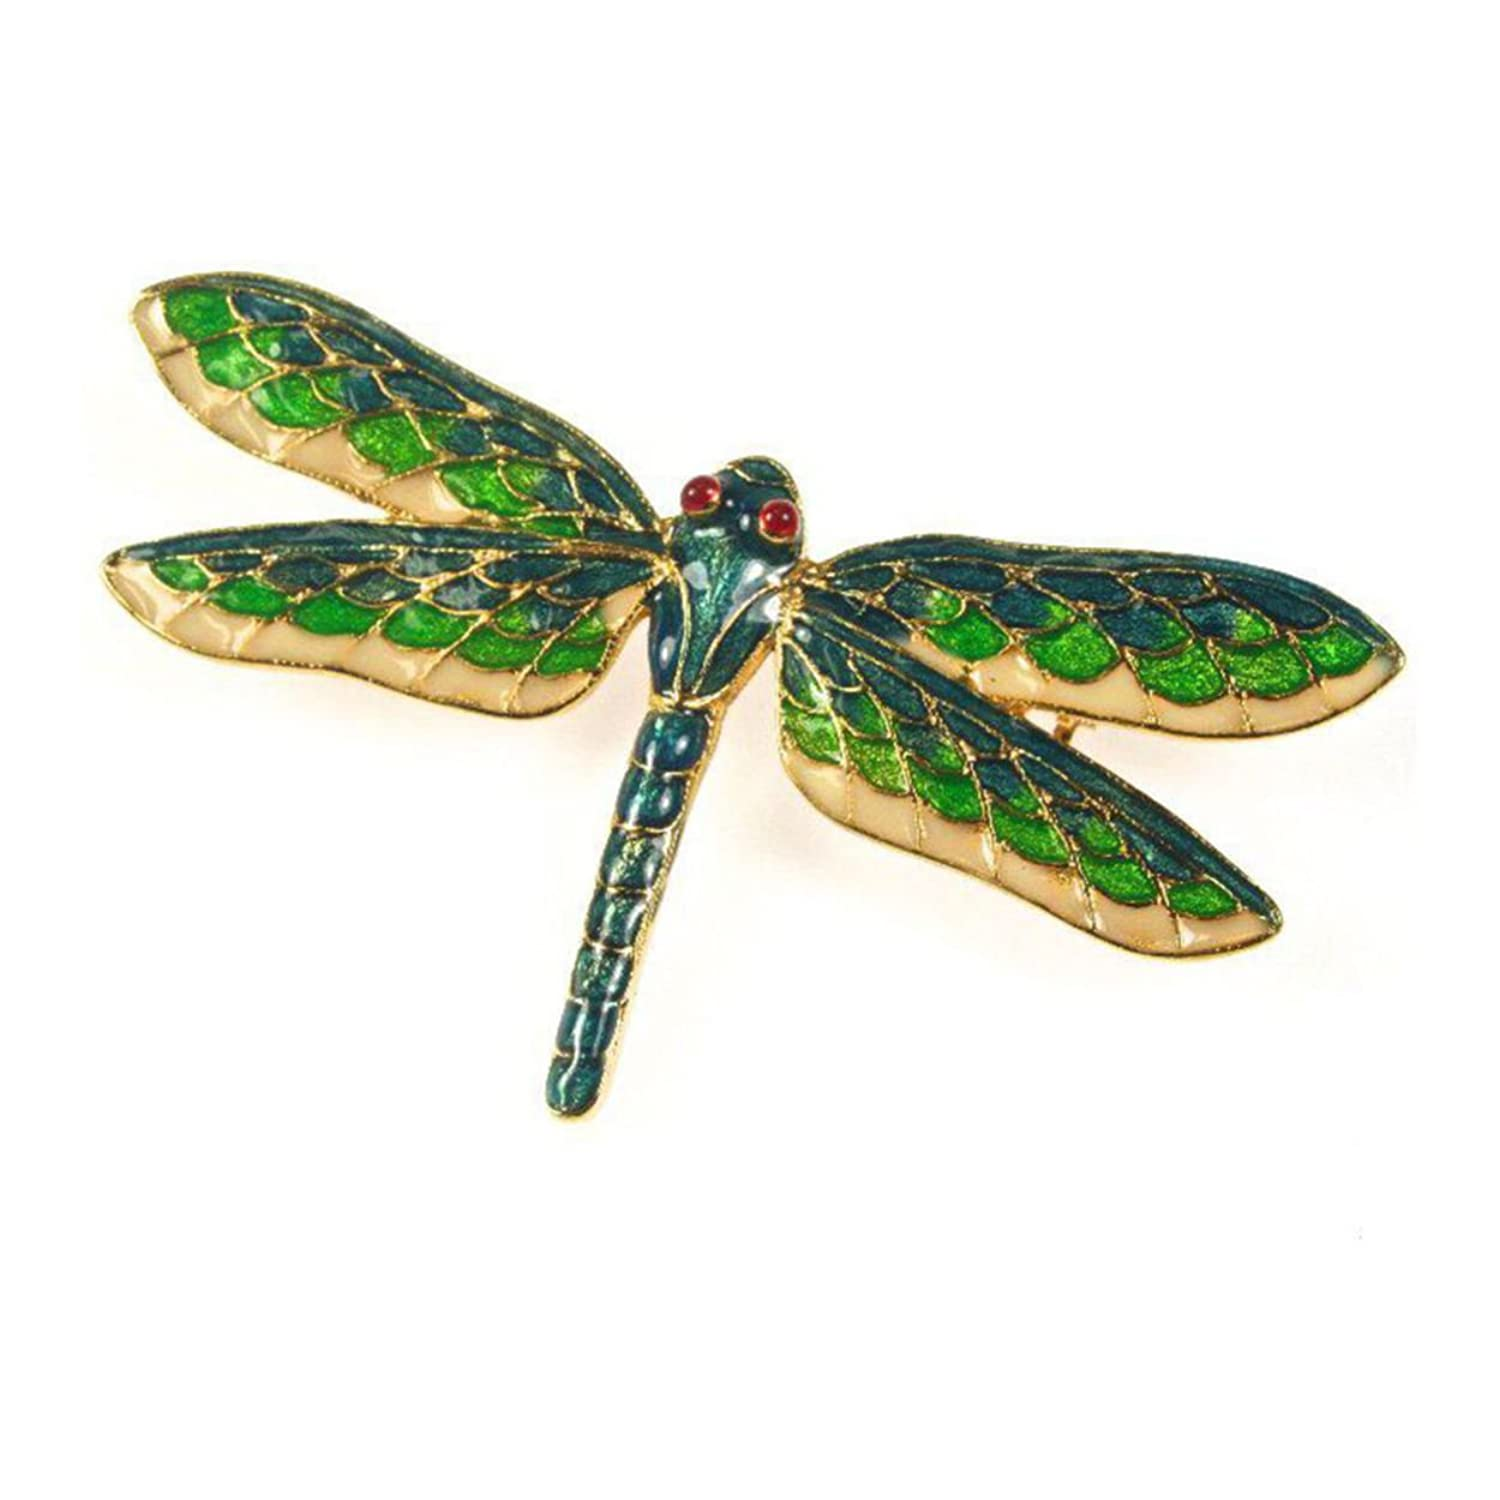 Stained Glass Cloisonne Golden Green Blue Dragonfly Brooch Pin Pricegems Museum Collection